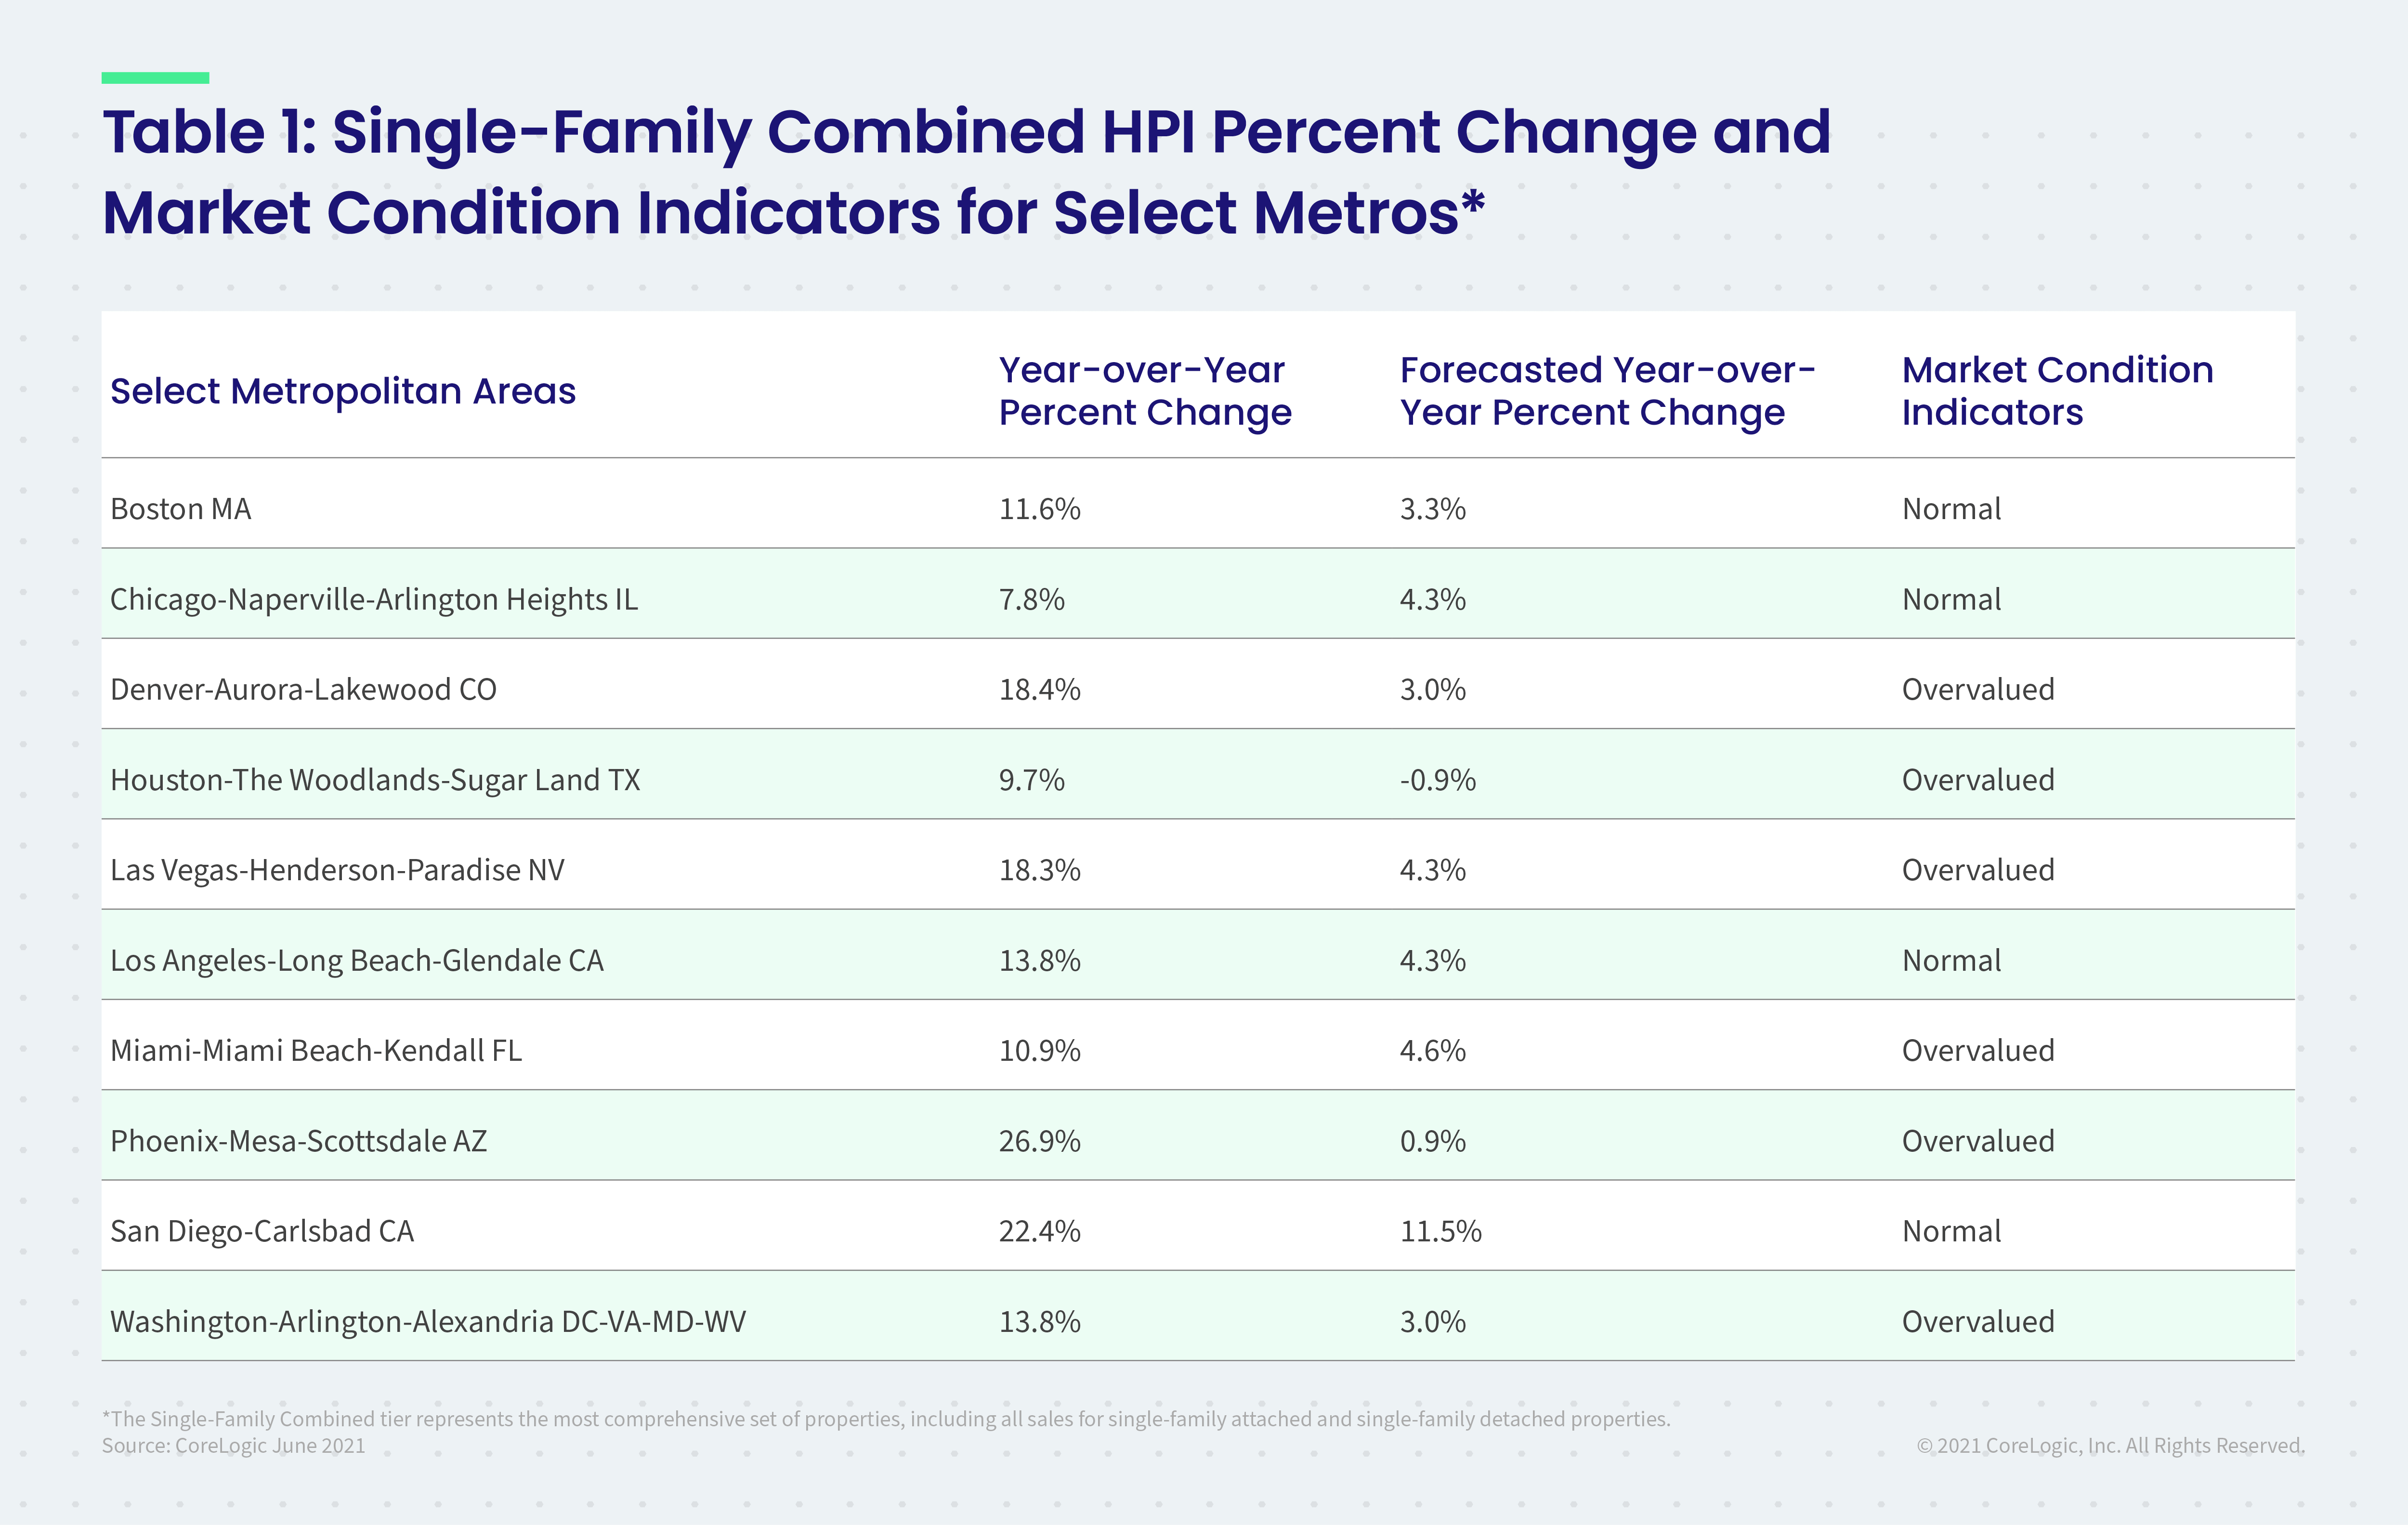 Table 1:  Single-Family Combined HPI Percent Change and Market Condition Indicators for Select Metros